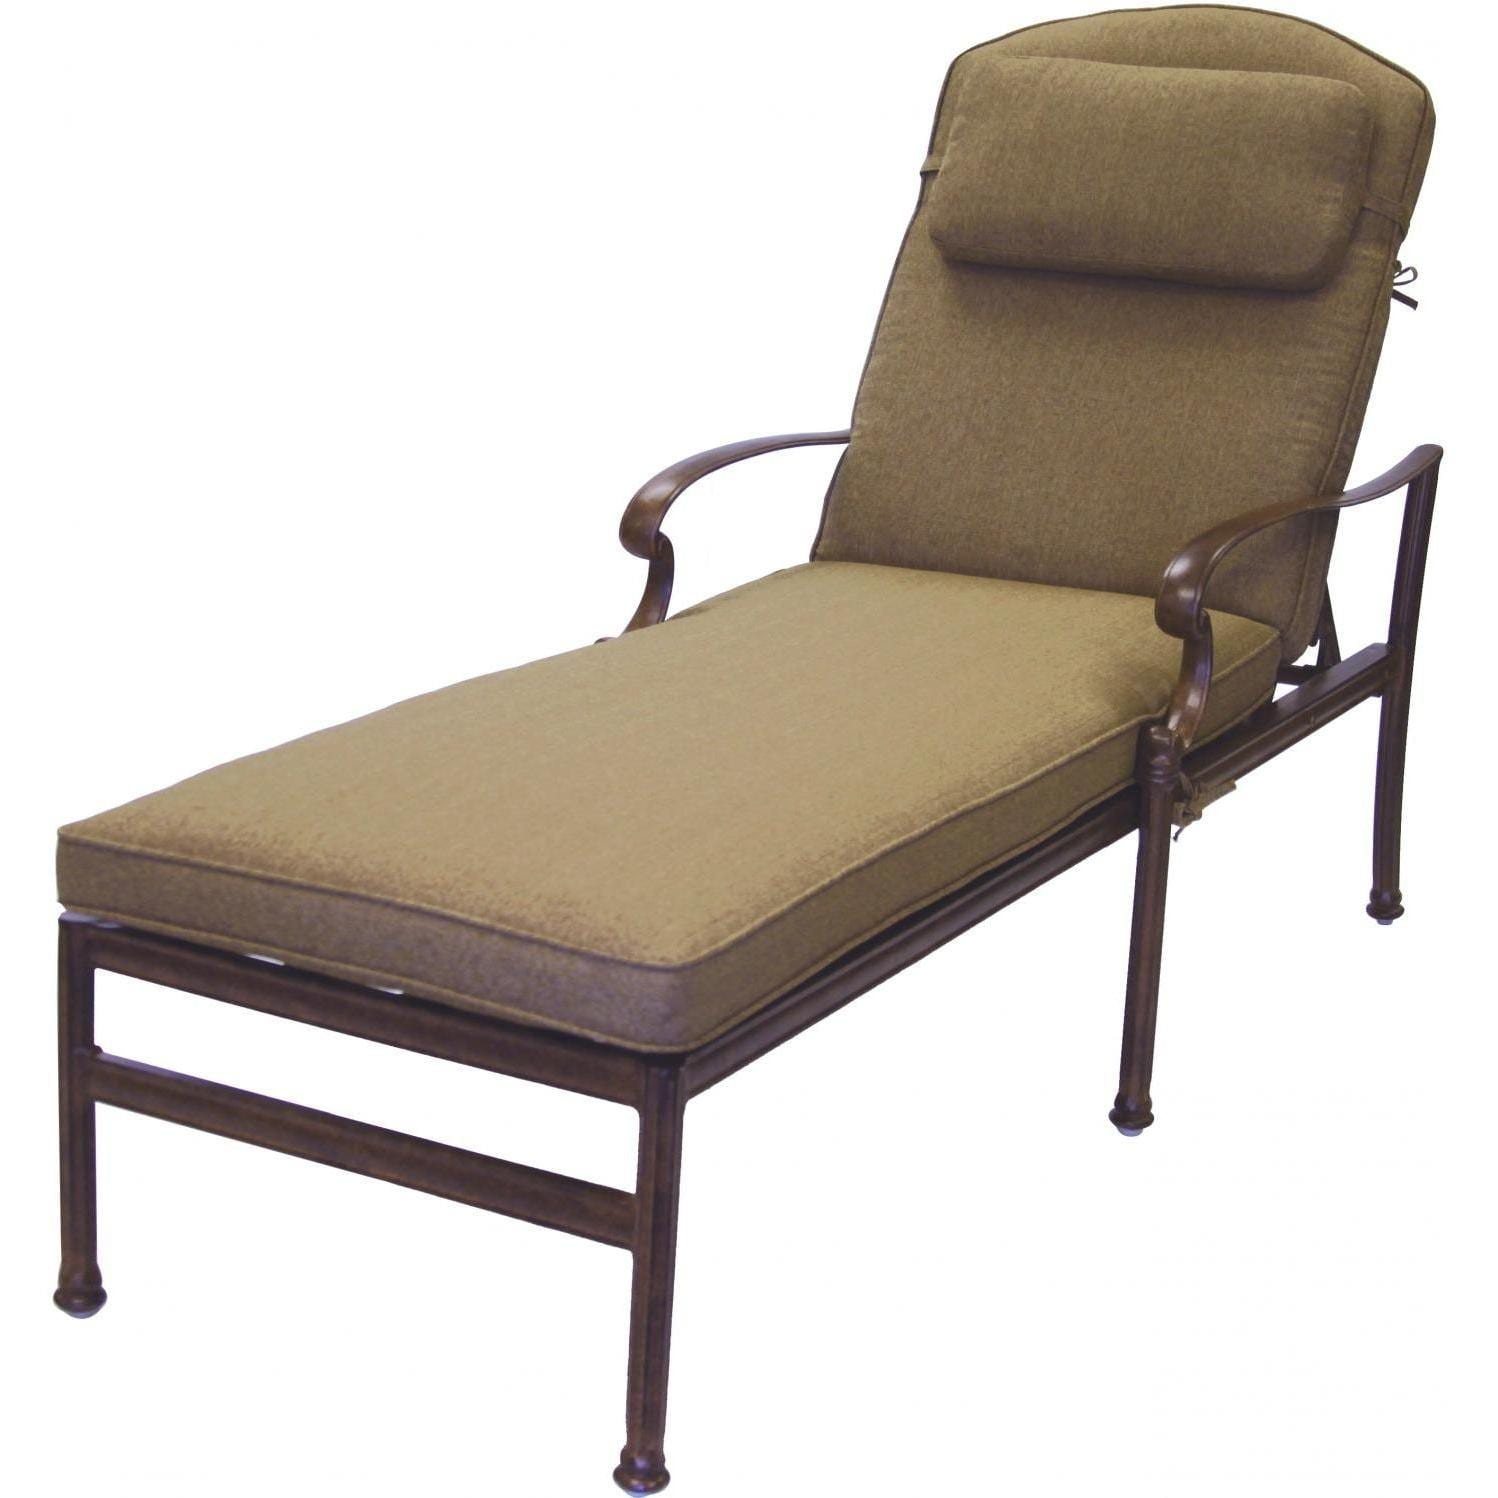 Darlee Santa Barbara Patio Chaise Lounge